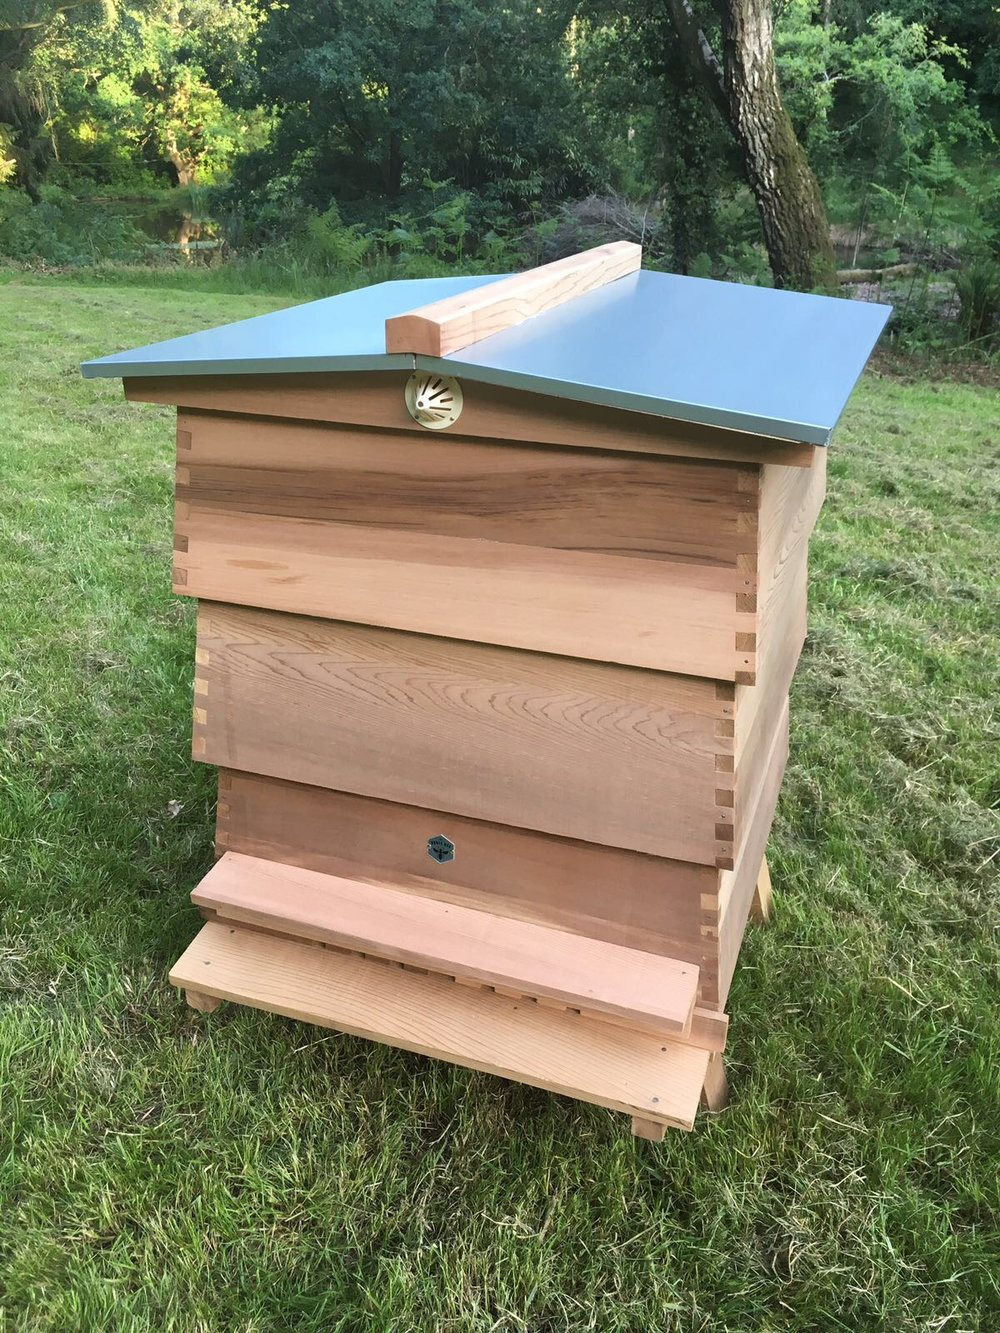 One of our WBC hives.